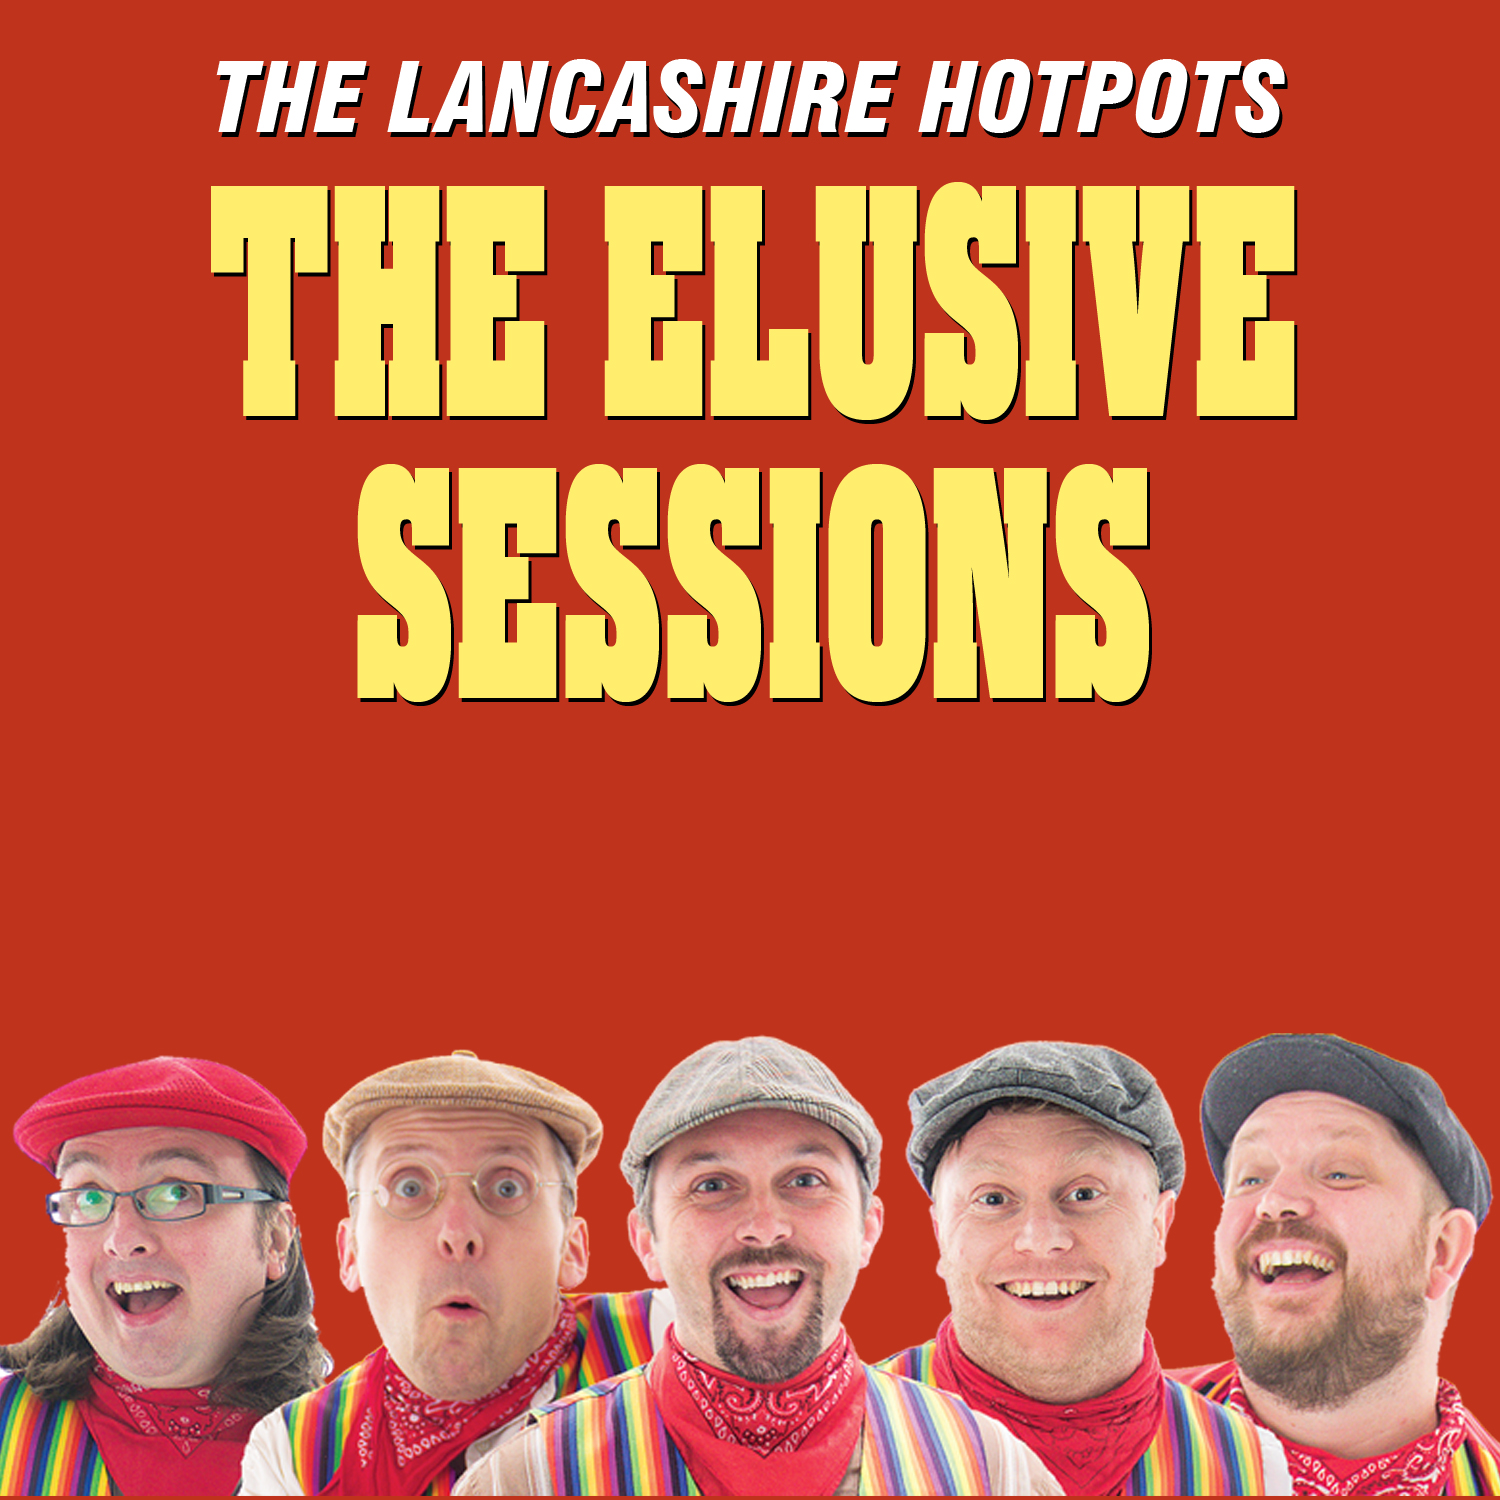 The Elusive Sessions by The Lancashire Hotpots